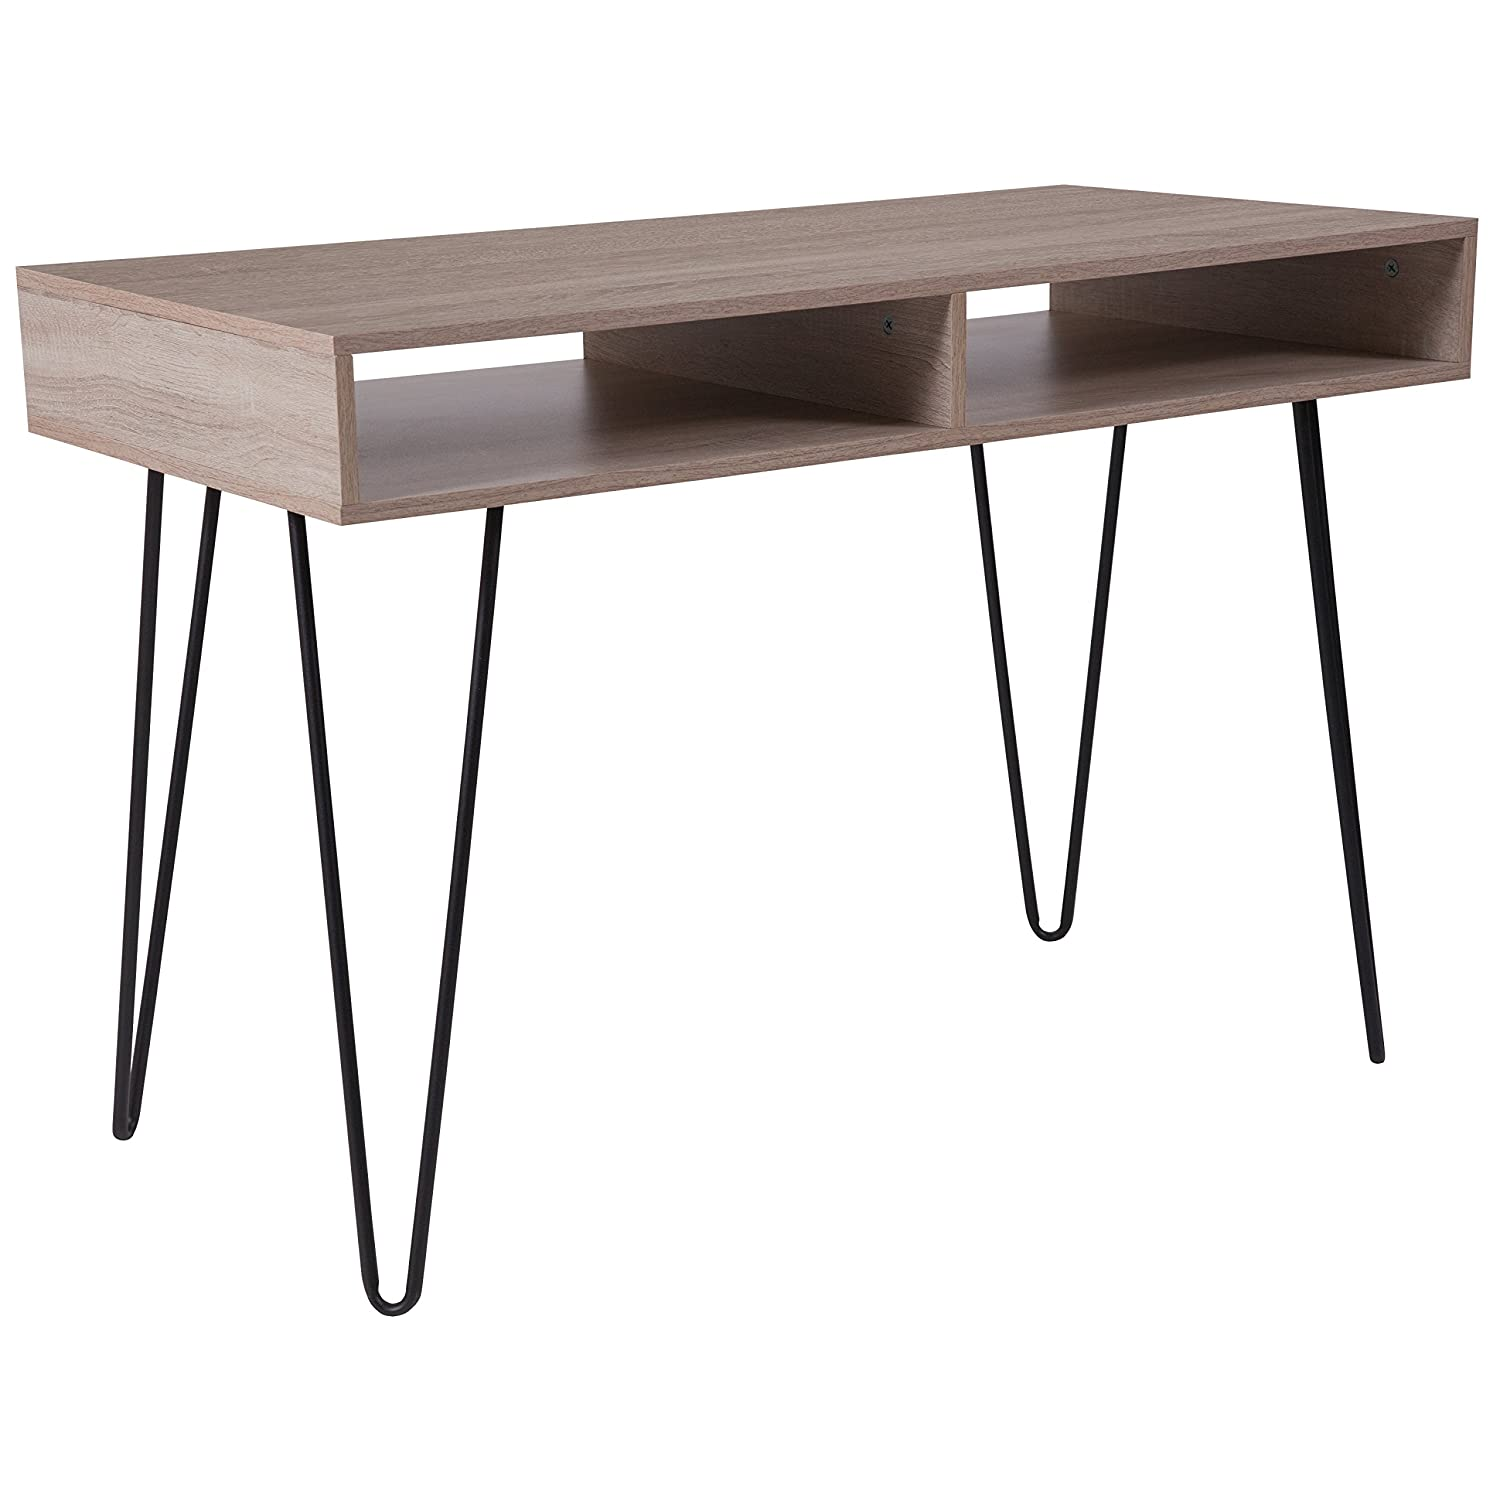 Flash Furniture Franklin Oak Wood Grain Finish Computer Table with Black Metal Legs